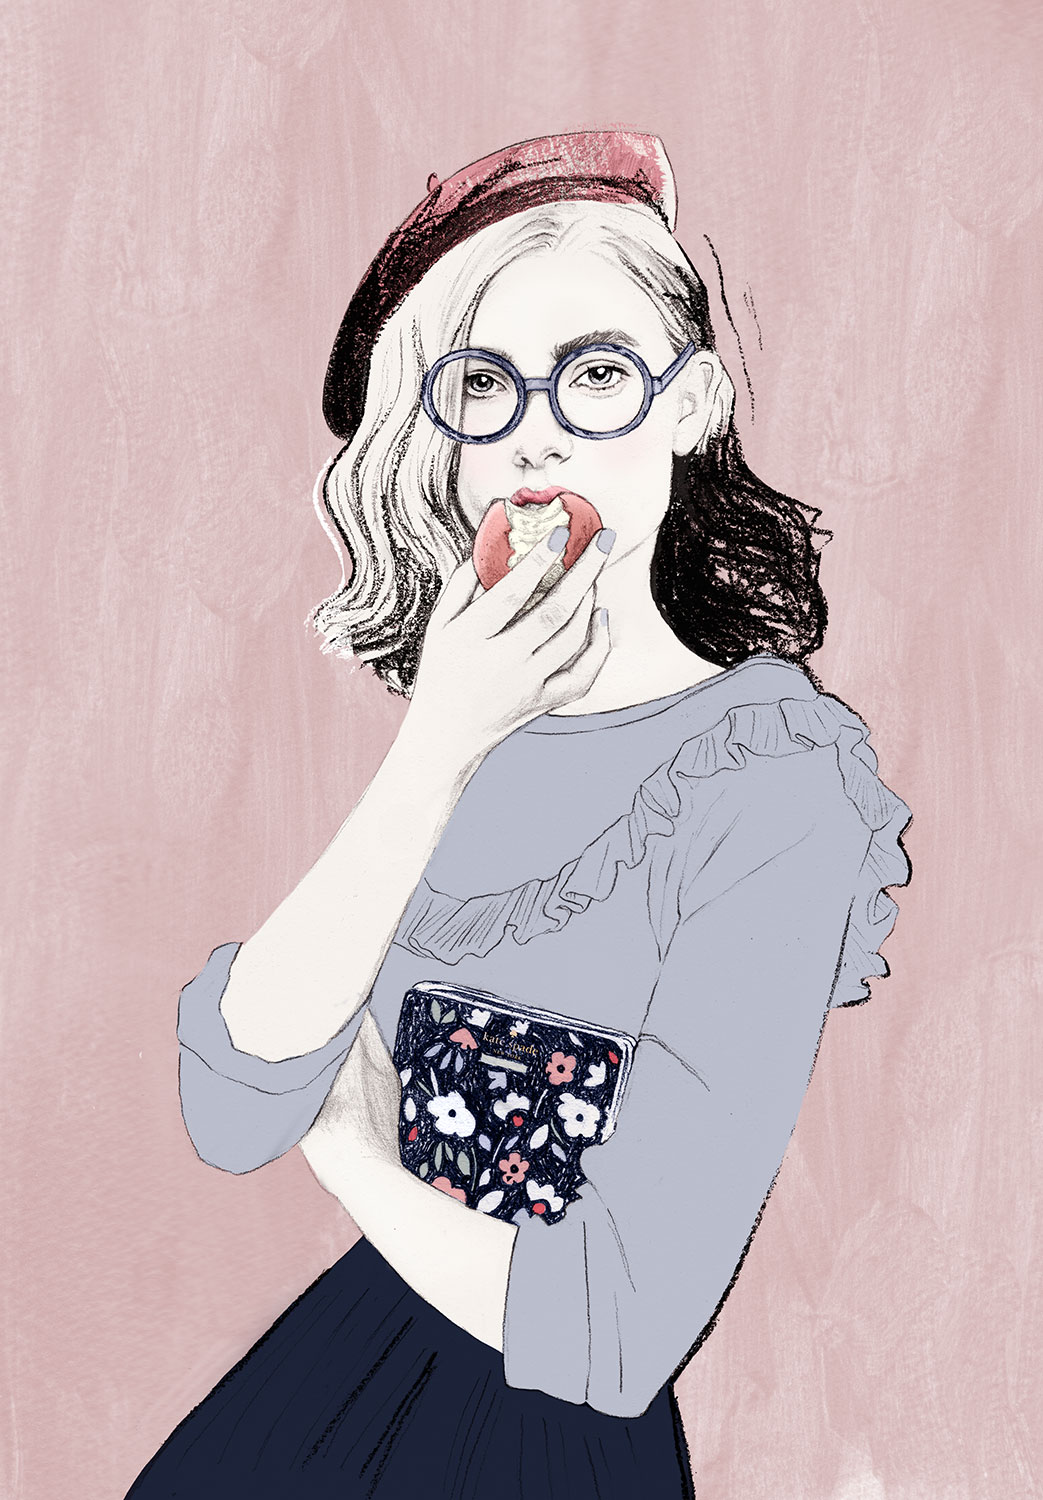 Elodie-illustratrice-mode-preppy